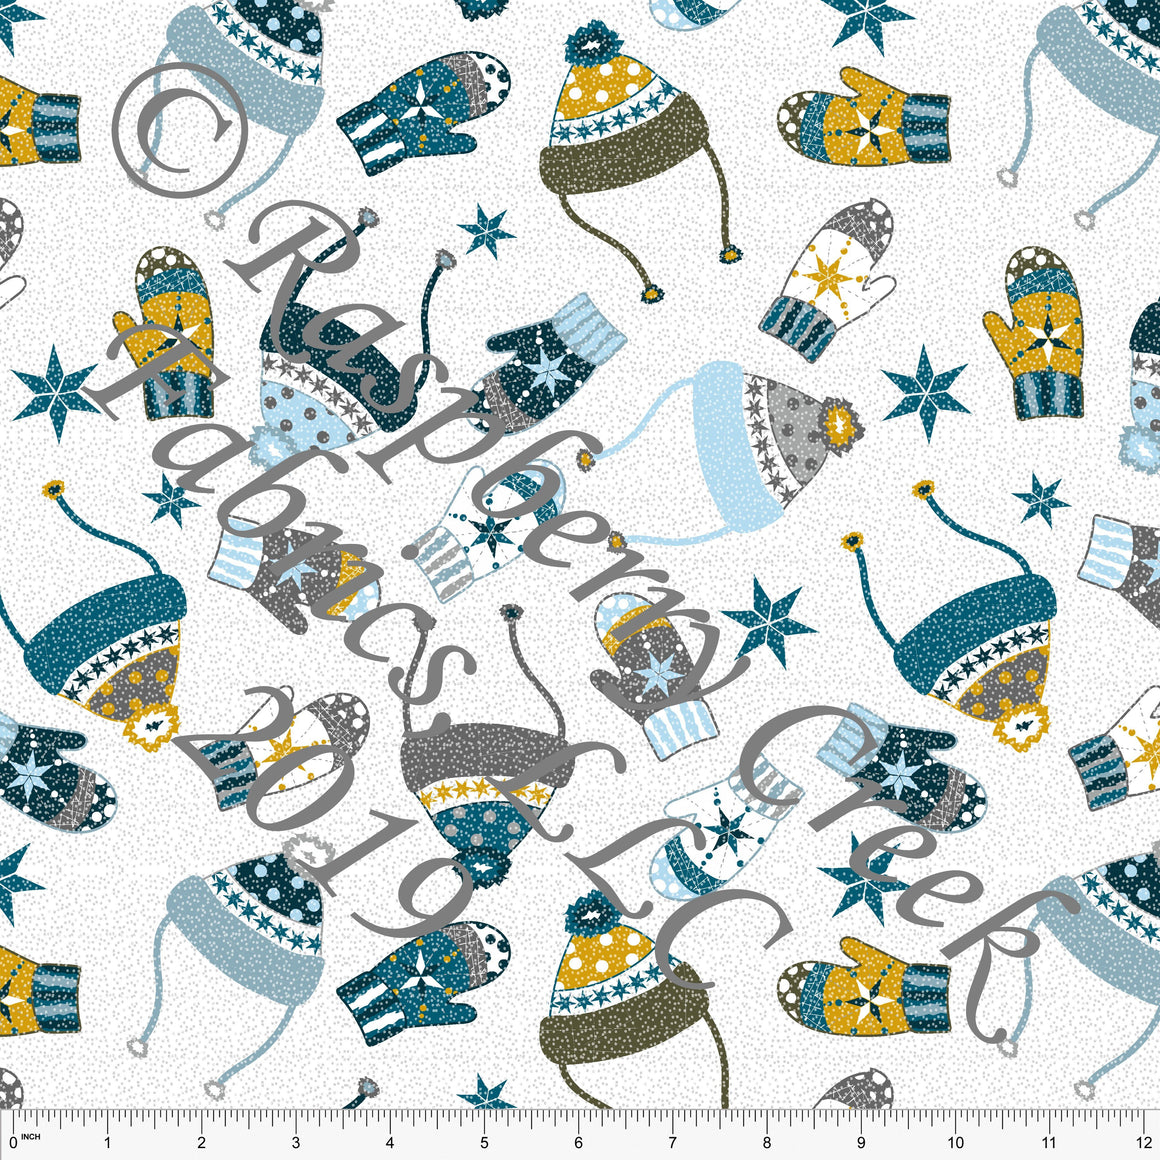 Blue Teal Mustard and Grey Stocking Hats and Mittens by Elise Peterson for Club Fabrics - Raspberry Creek Fabrics